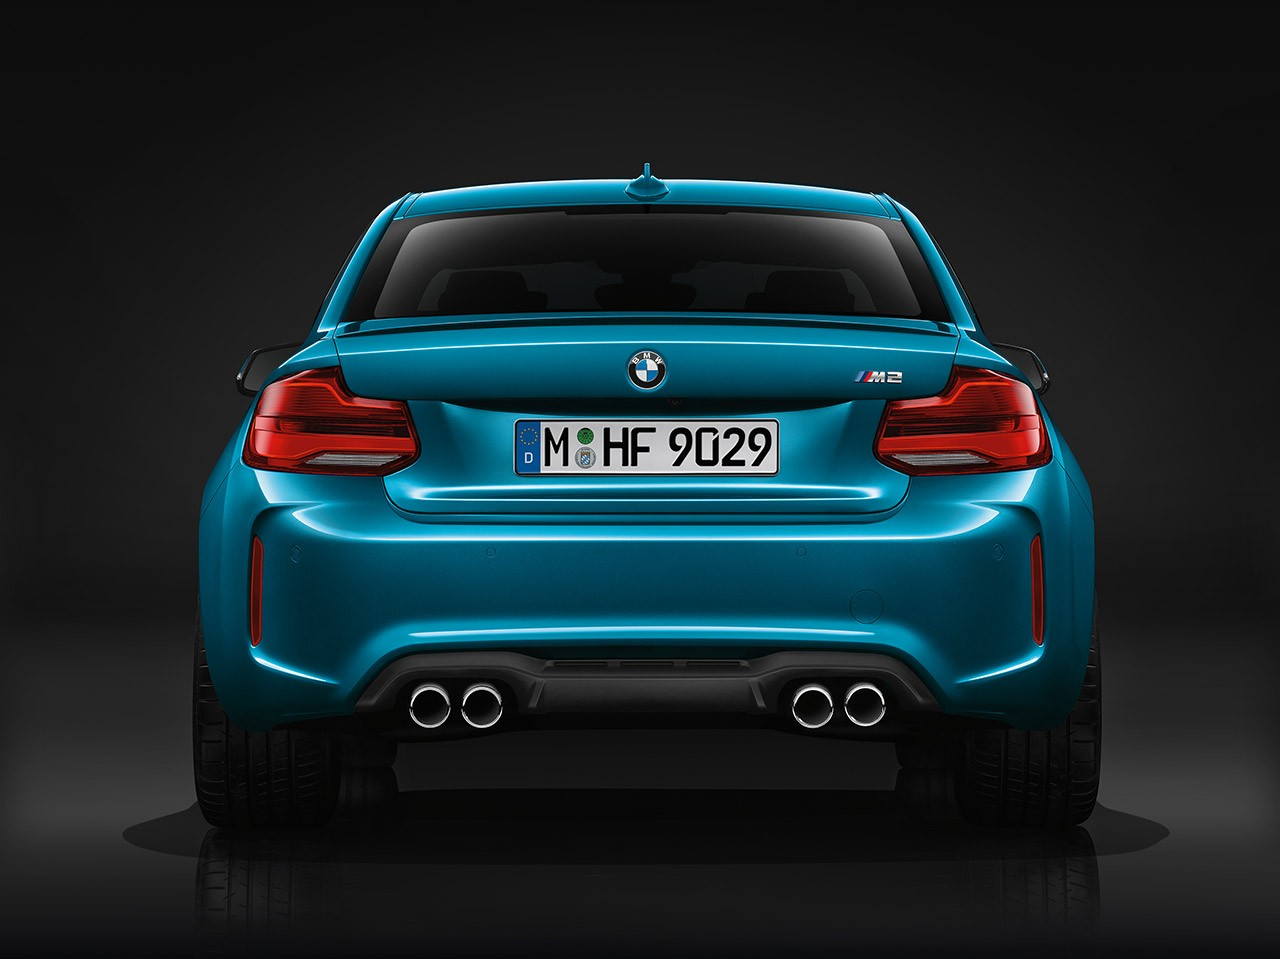 2018 BMW 2 Series rearview